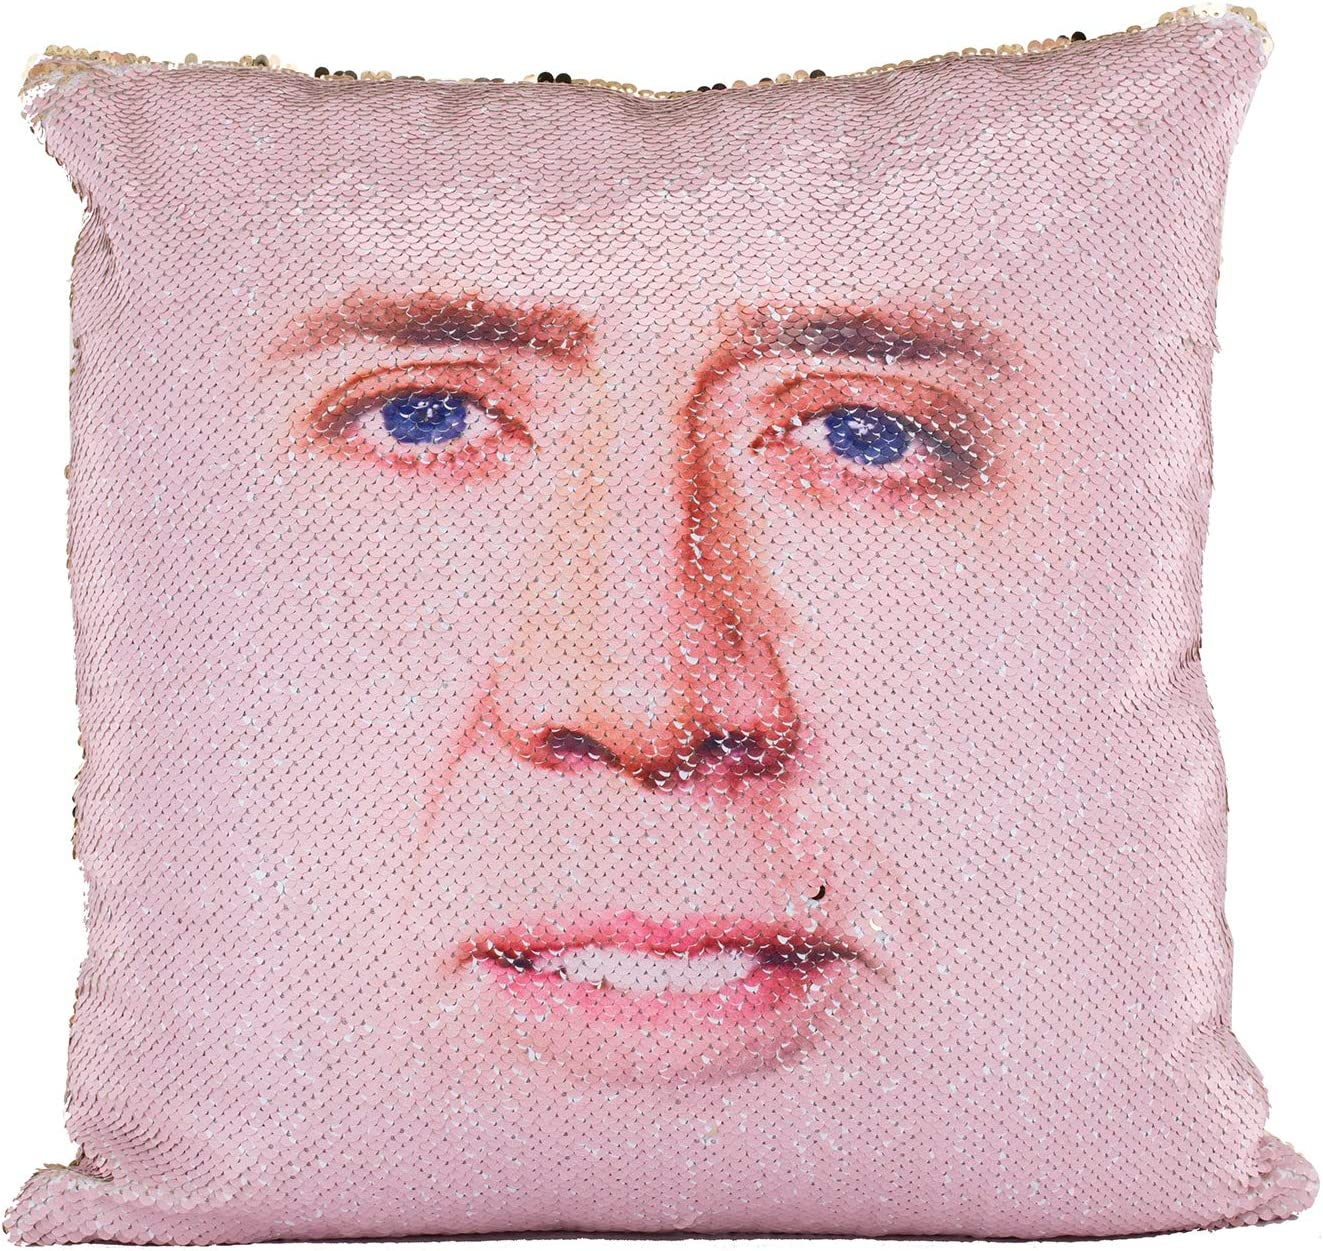 Ainik Mermaid Pillow Case Mermaid Pillow Cover Sequin Throw Pillow Case Decorative Color Change Cushion Cover Sofa Bedroom Car Kids 16 x 16 inches (1 Nicolas Cage Face-Red)